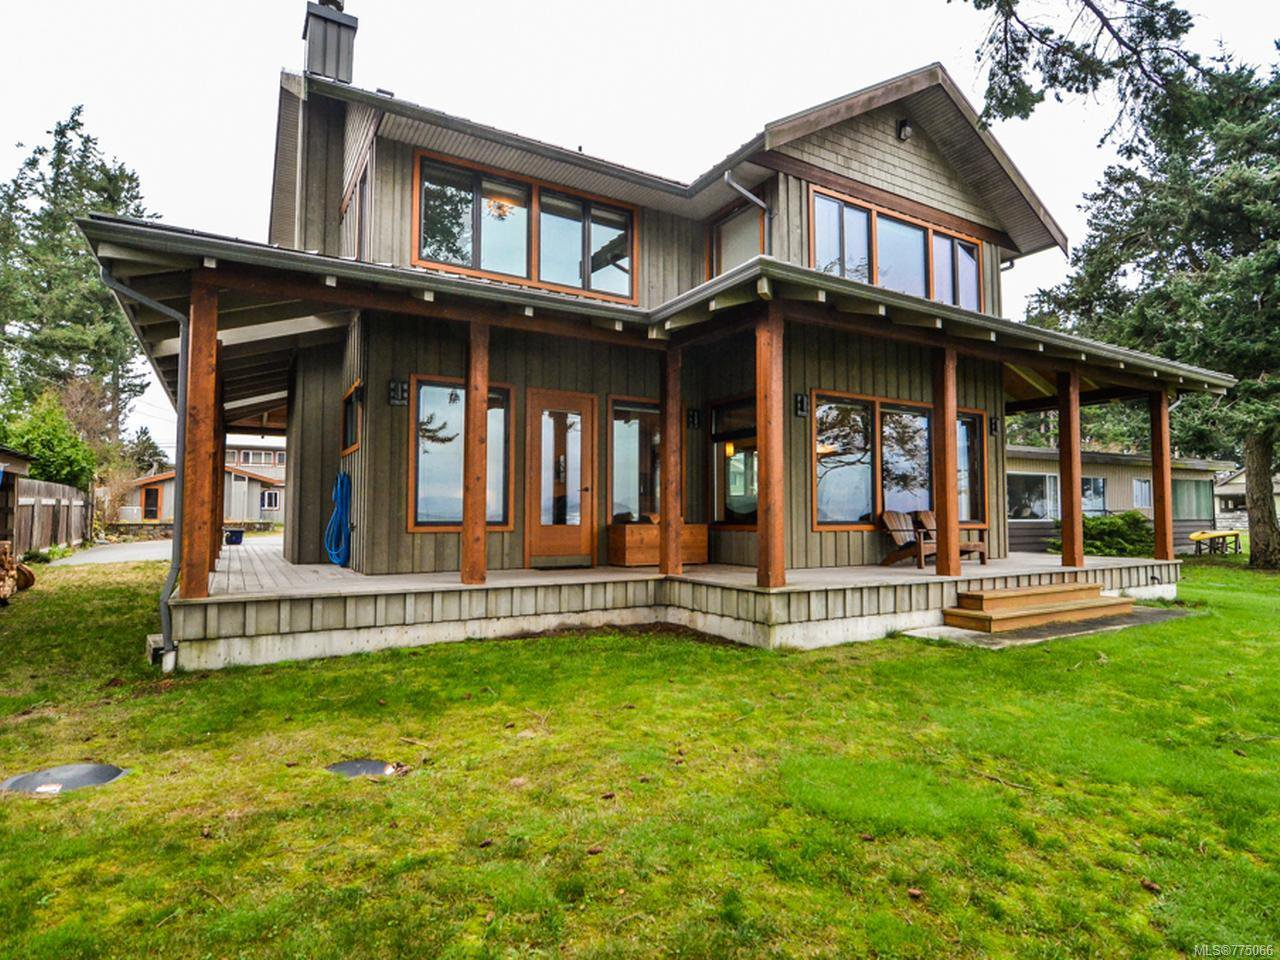 Main Photo: 3777 S ISLAND S Highway in CAMPBELL RIVER: CR Campbell River South House for sale (Campbell River)  : MLS®# 775066